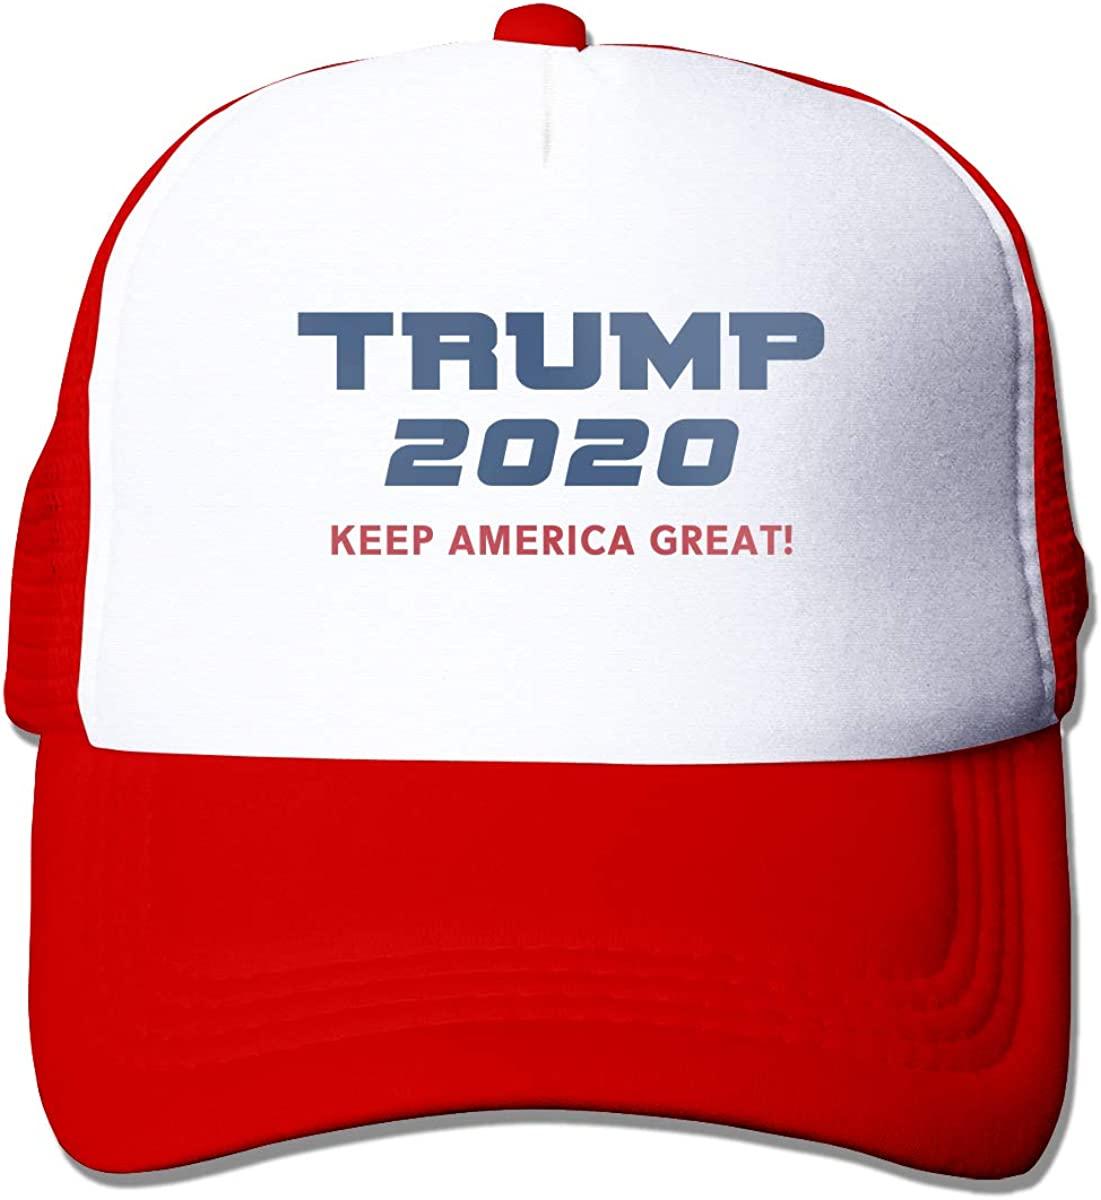 Zhiwei Station MAGA Hat Make America Great Again Donald Trump Slogan with USA4 Unisex 3D Printed Trucker Hat